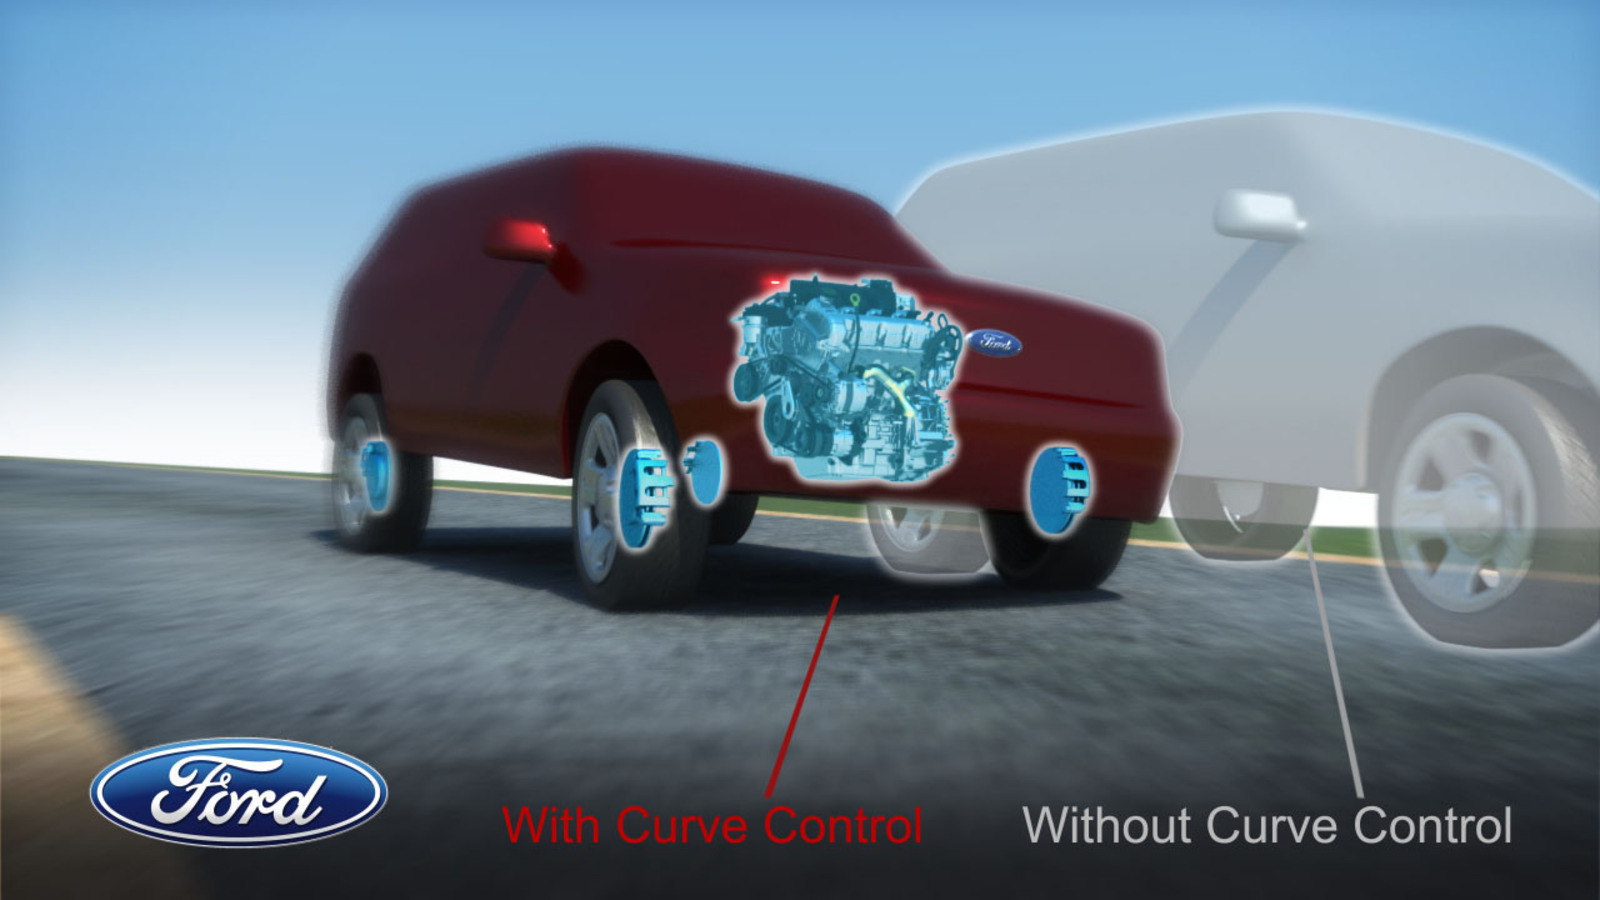 Ford Curve Control Tech To Help Tame Twisties